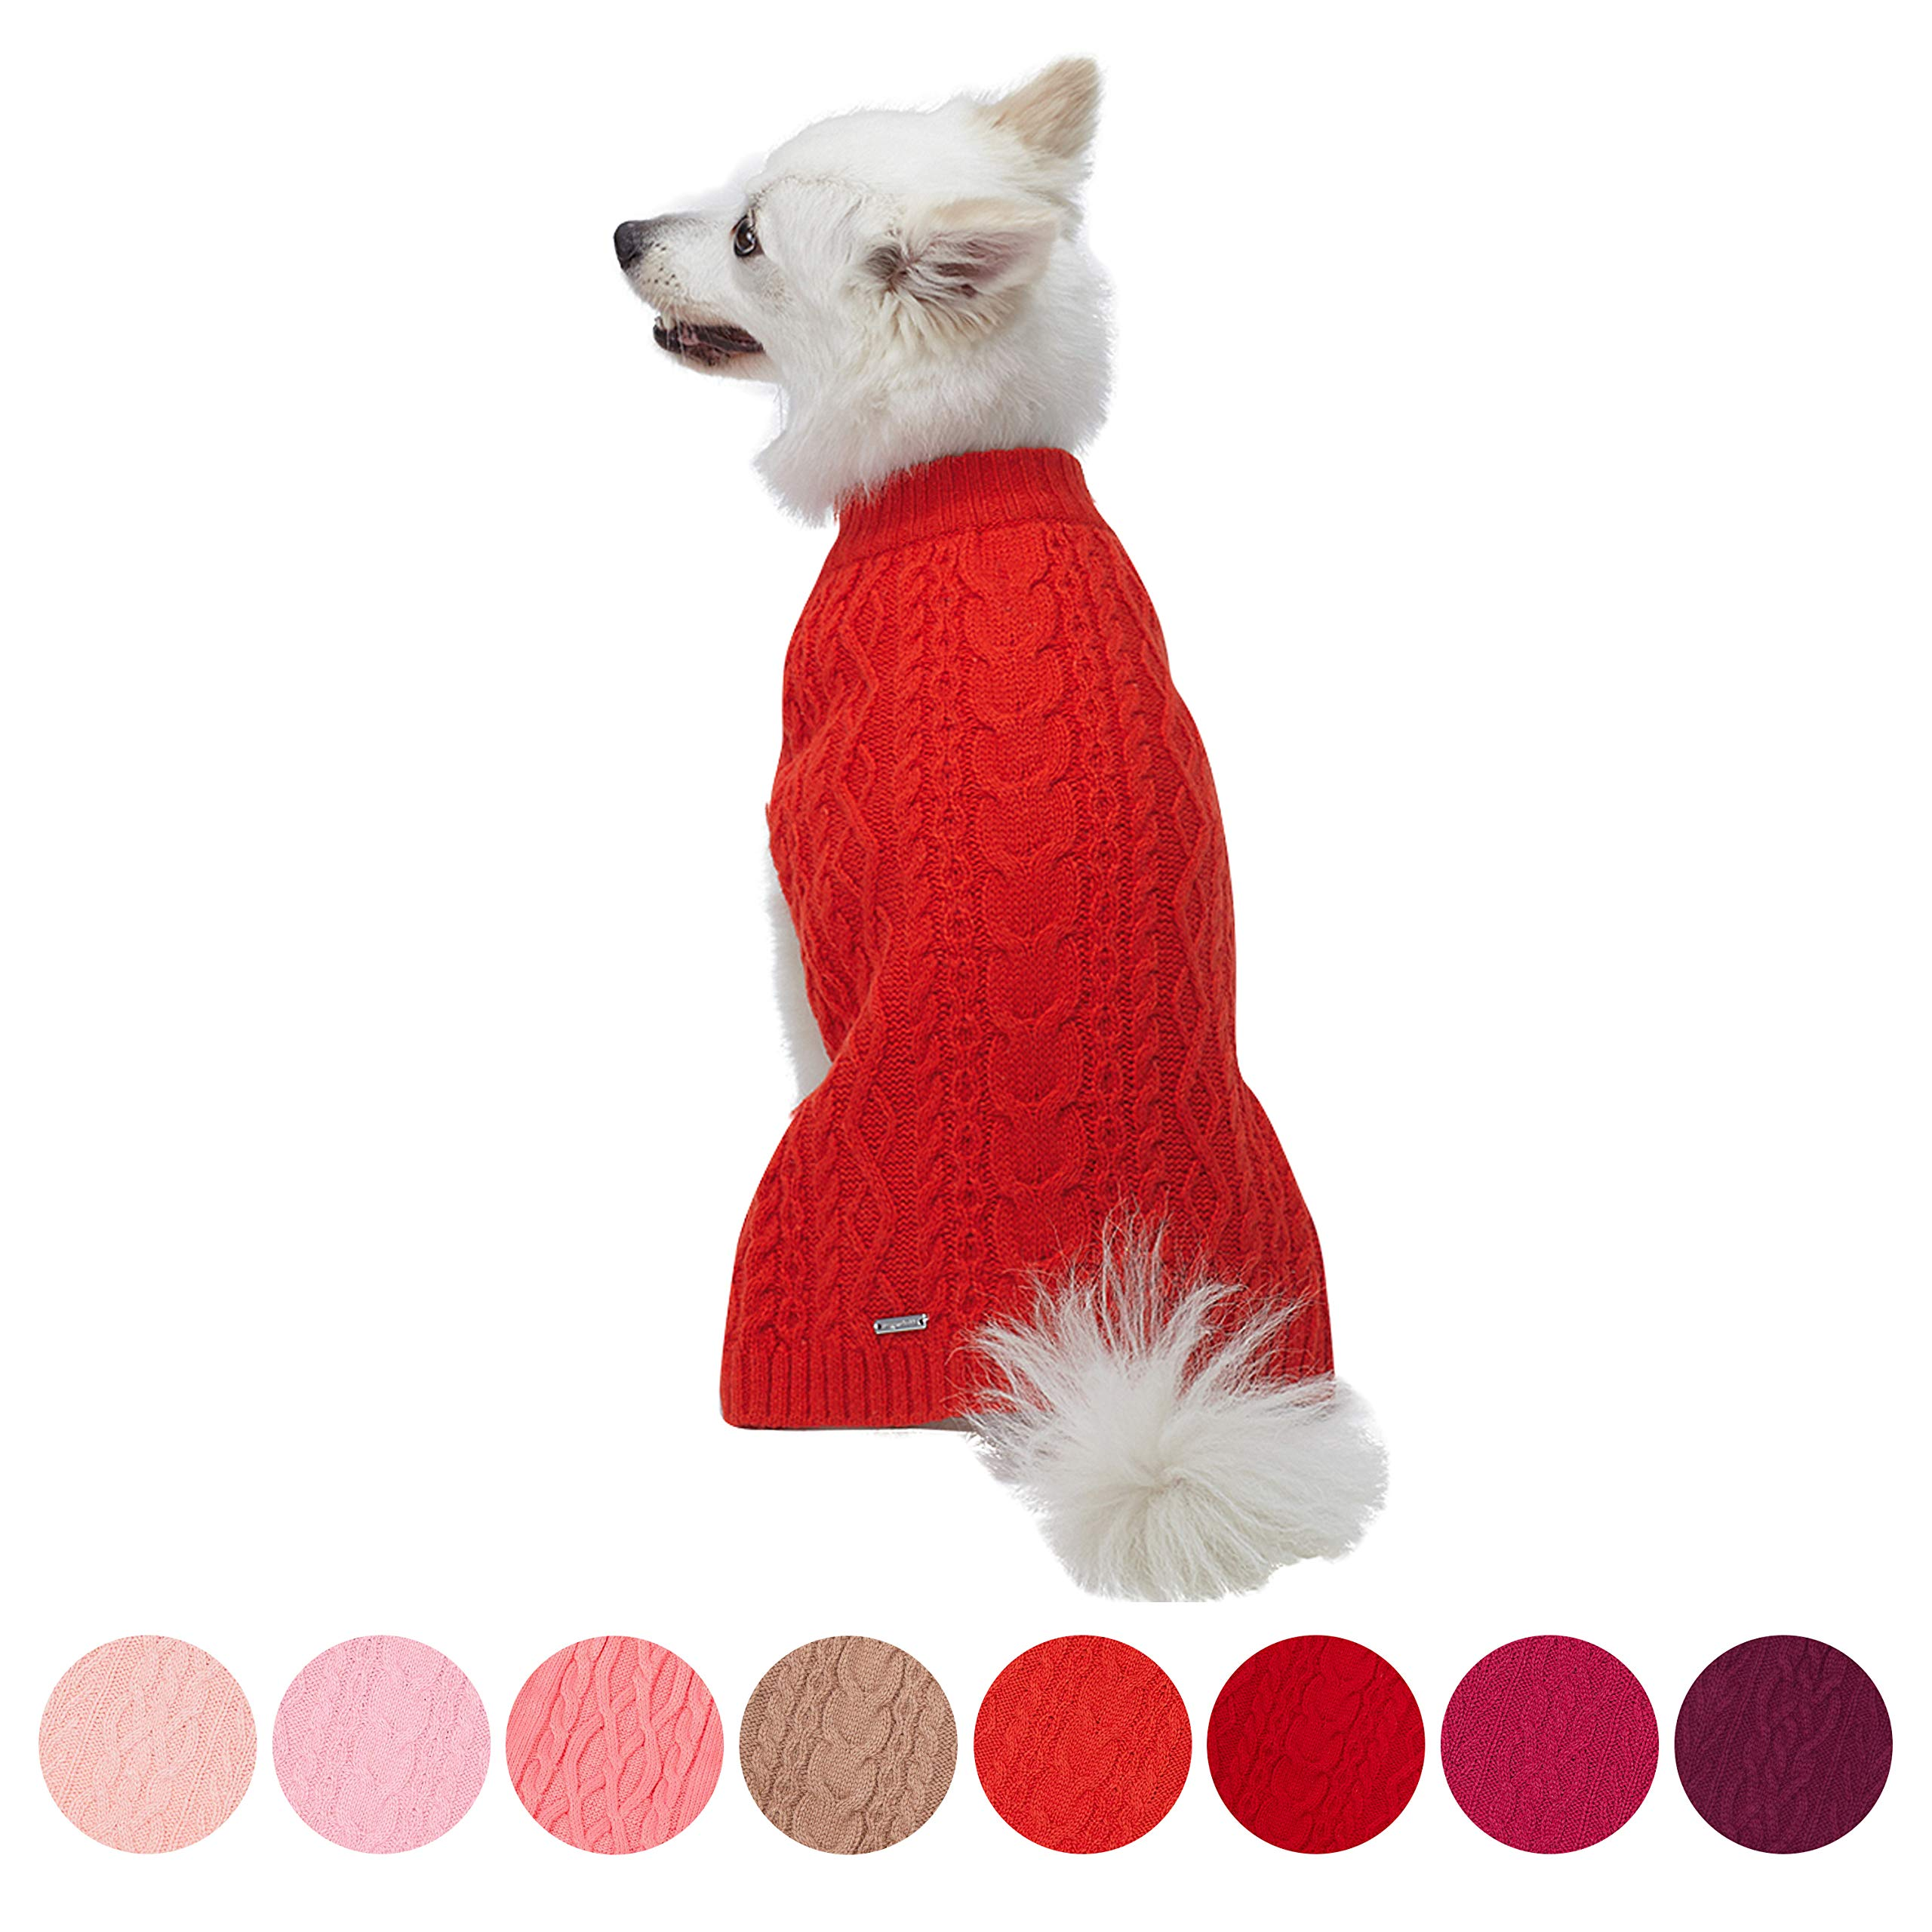 Blueberry Pet 16 Colors Classic Wool Blend Cable Knit Pullover Dog Sweater in Tomato, Back Length 16'', Pack of 1 Clothes for Dogs by Blueberry Pet (Image #1)